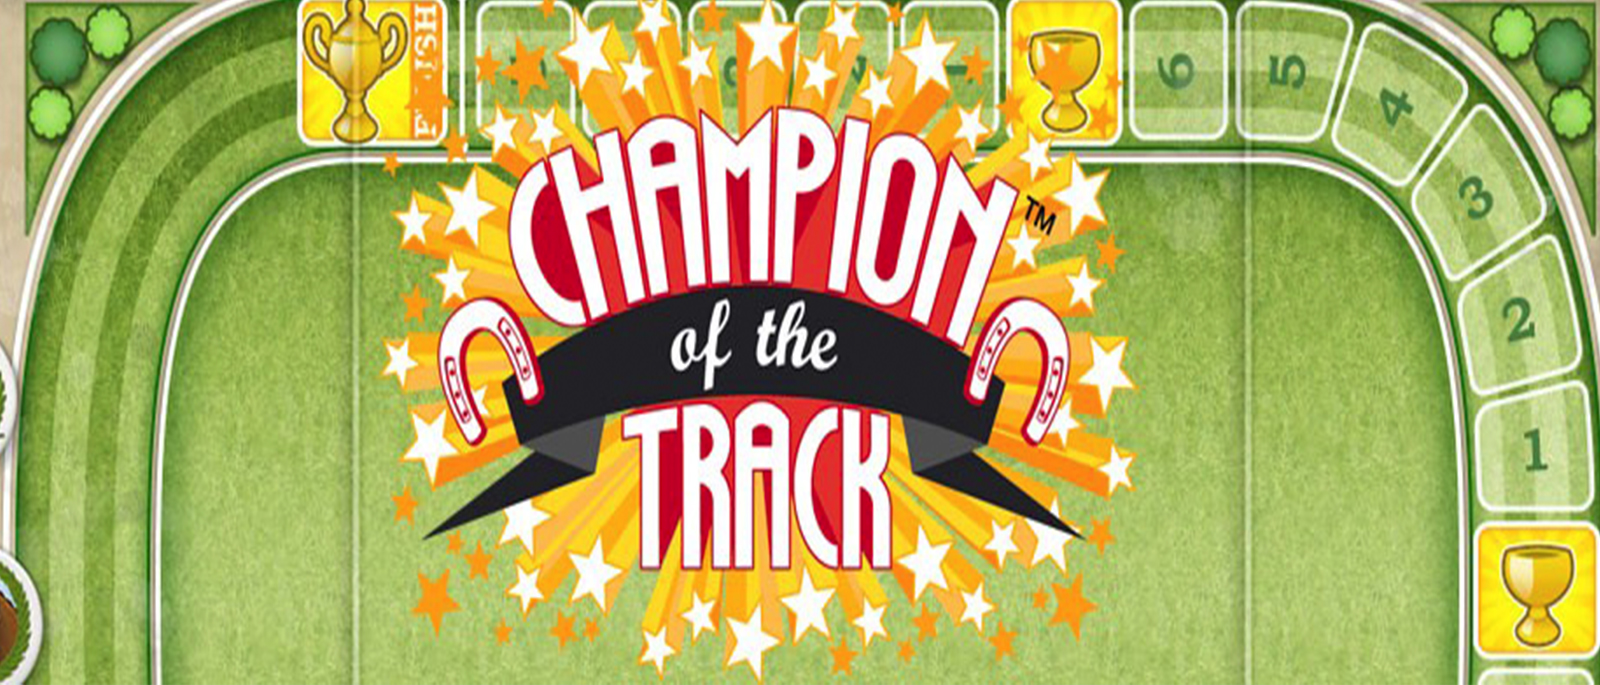 Champion of the Track Net Entertainment Slot Spiele